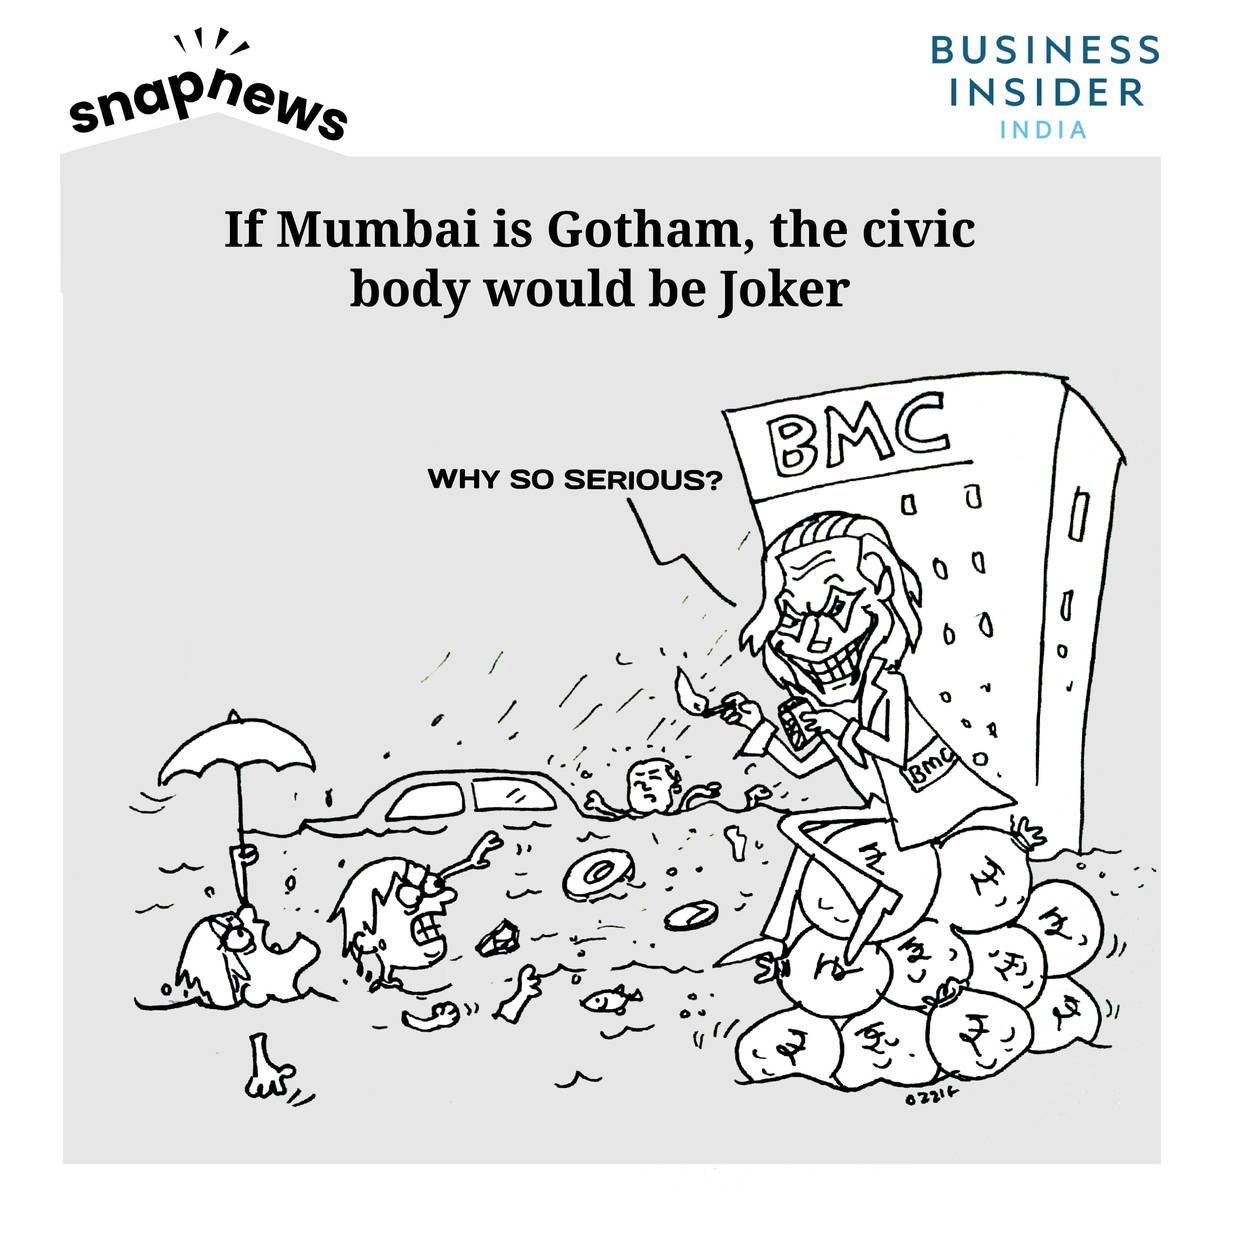 If Mumbai is Gotham, the civic body would be the Joker